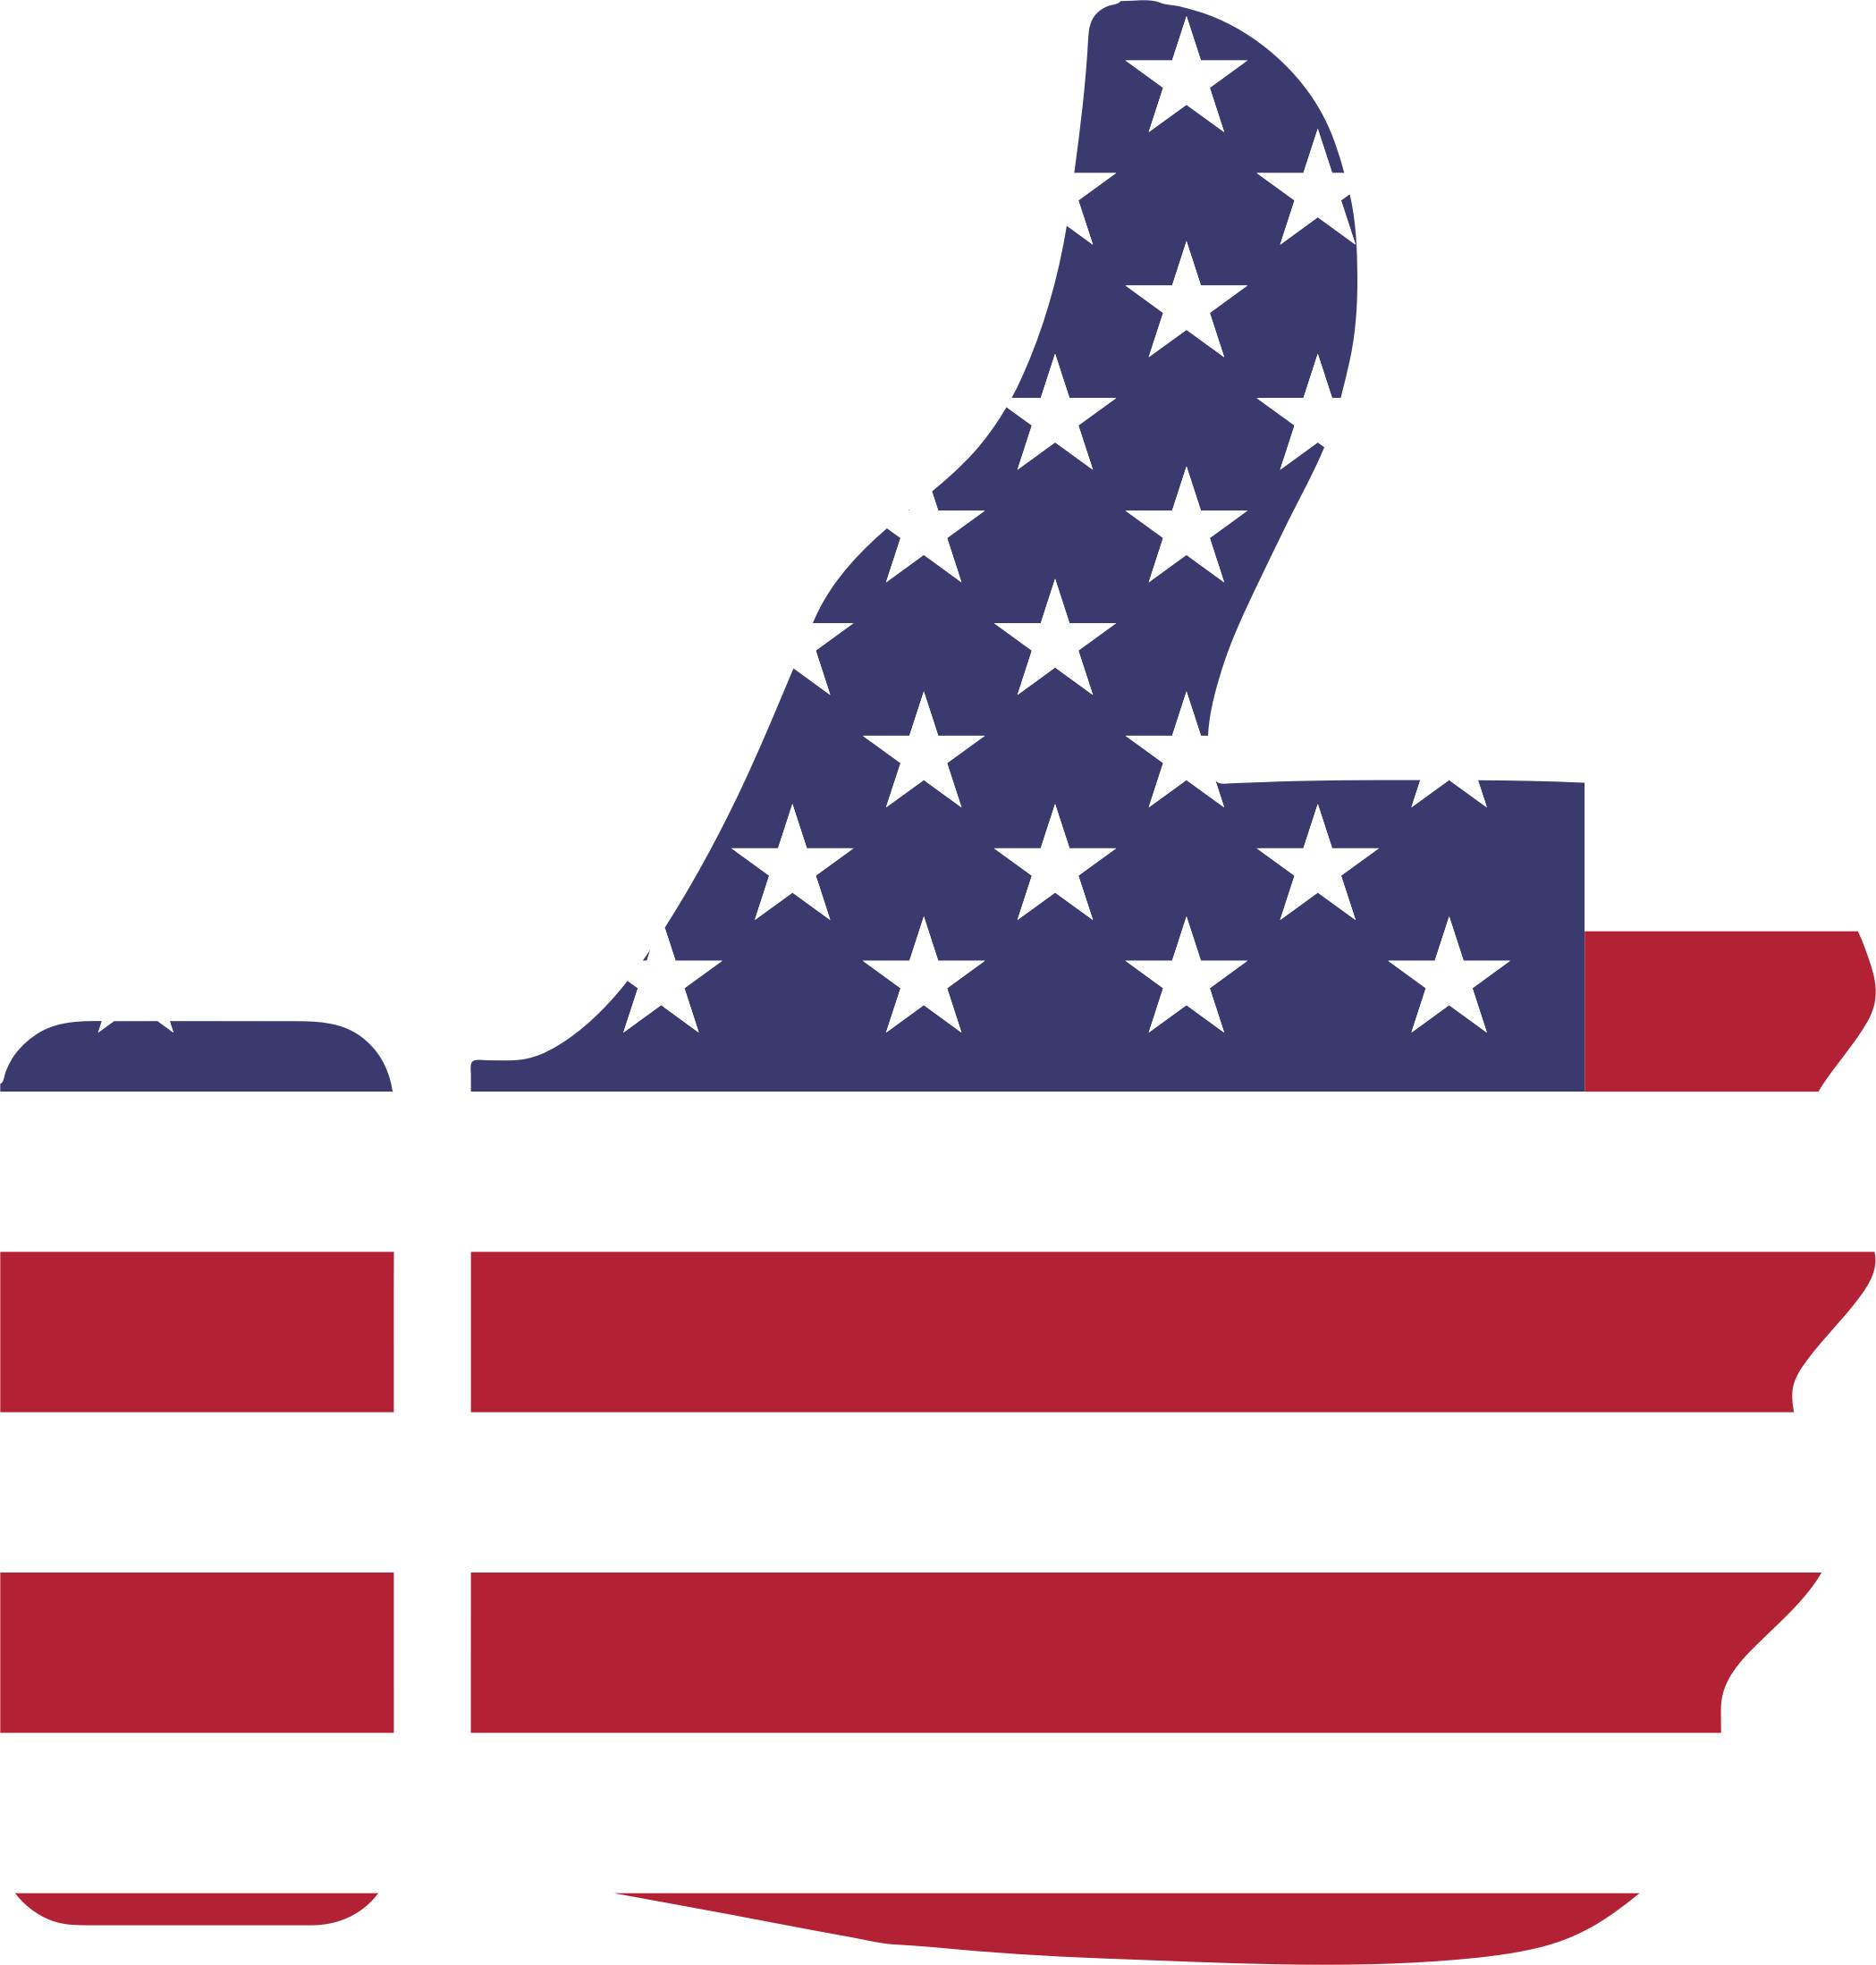 American star clipart clip art free stock Star American Flag transparent PNG - StickPNG clip art free stock